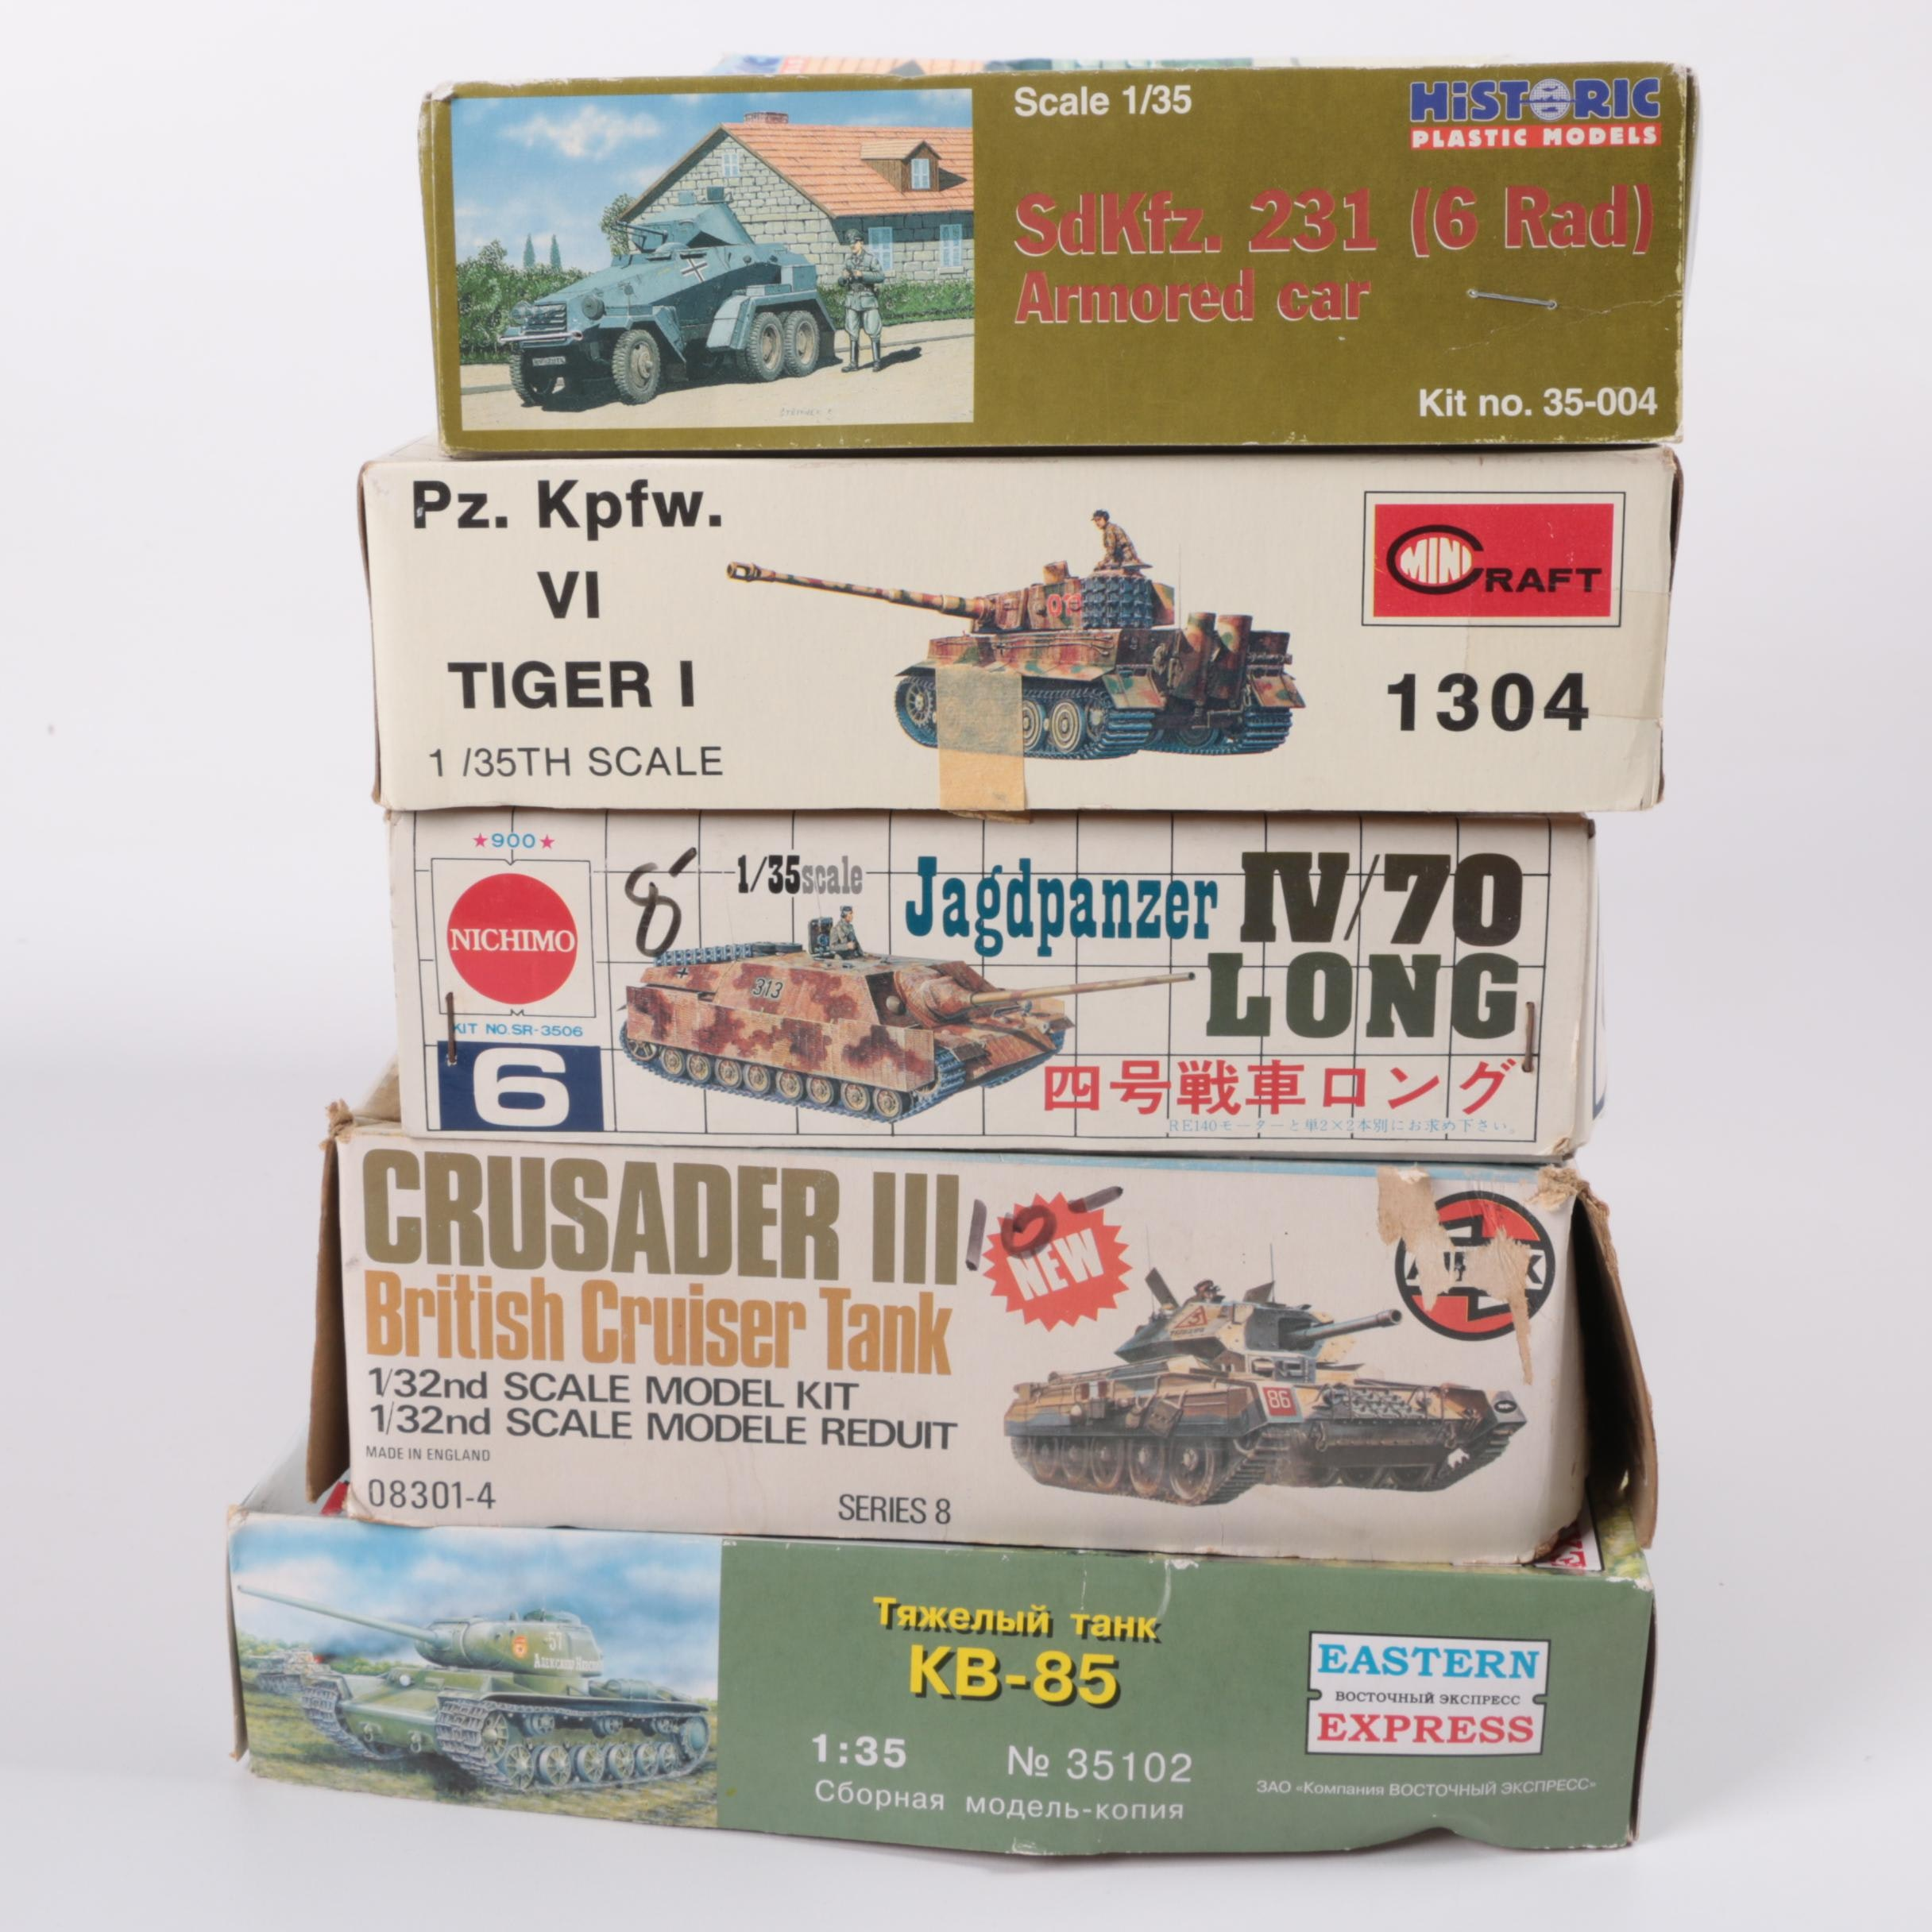 1/35 and 1/32 Scale Military Model Kits